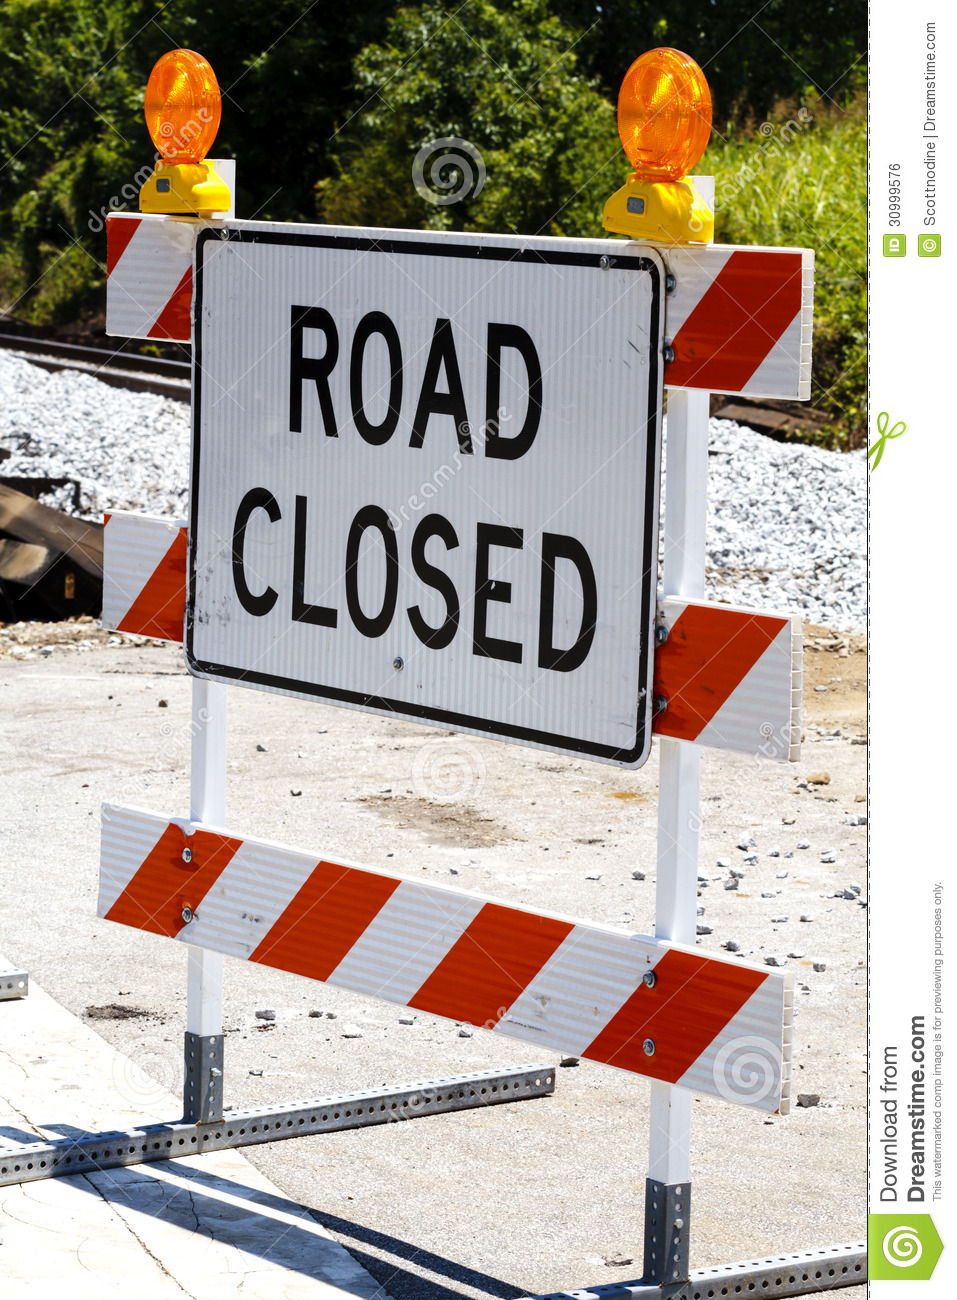 Road Closed Type Iii Barricade With Warning Lights Stock